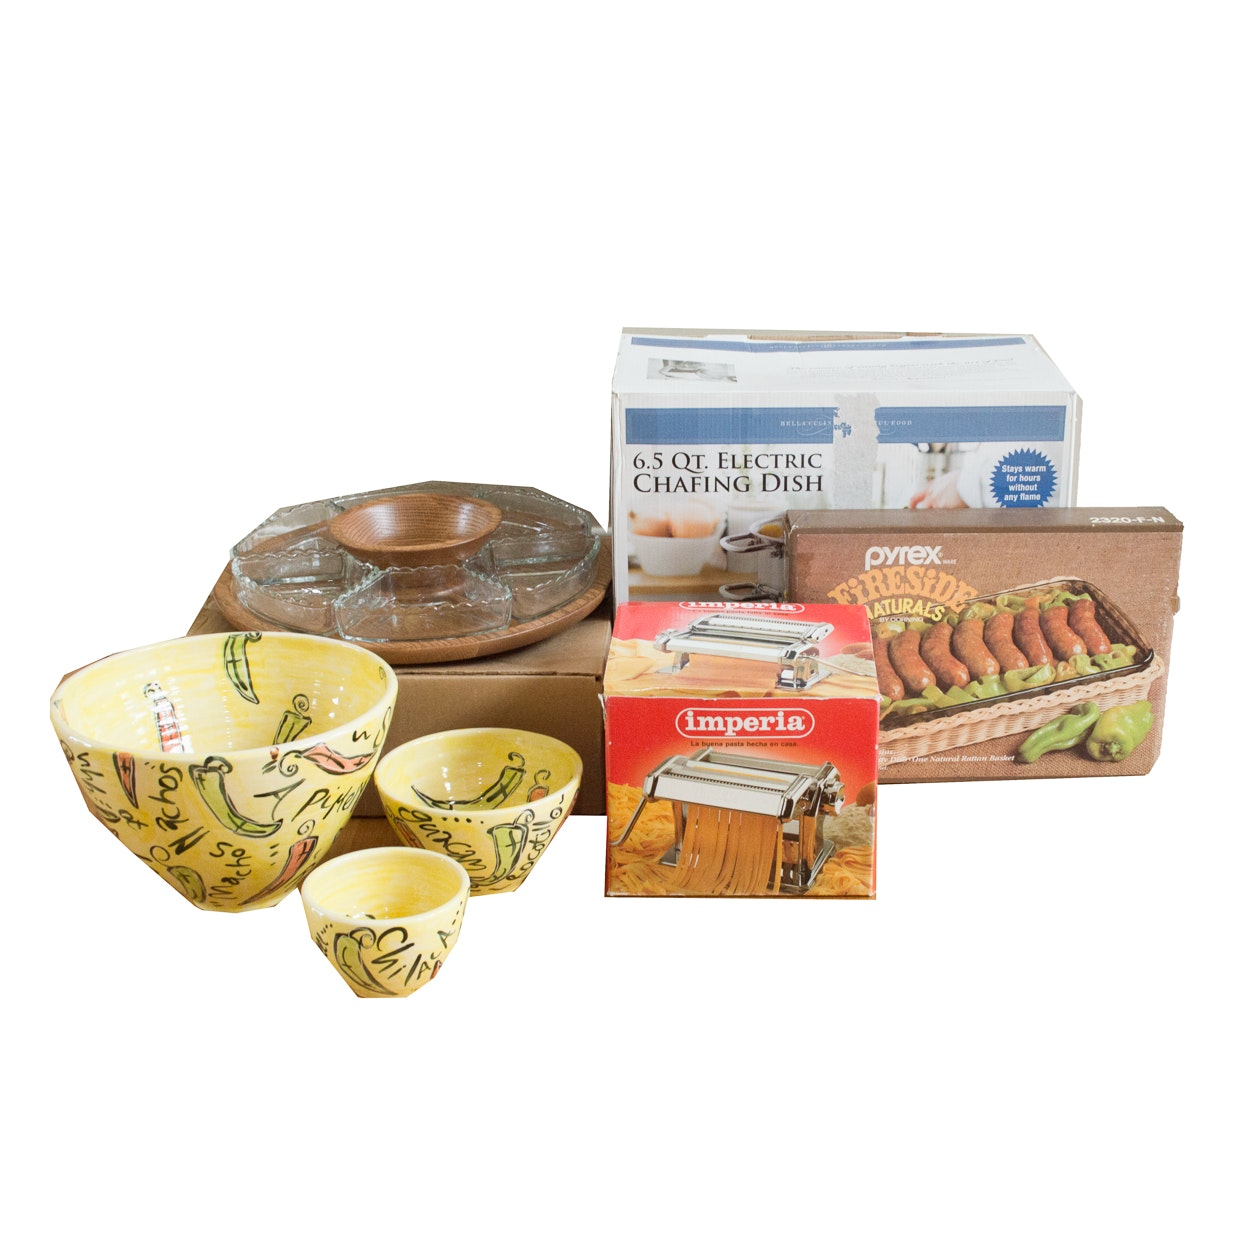 Kitchen Wares, Including Pyrex, Imperia, Bella Cucina, and Native Wood